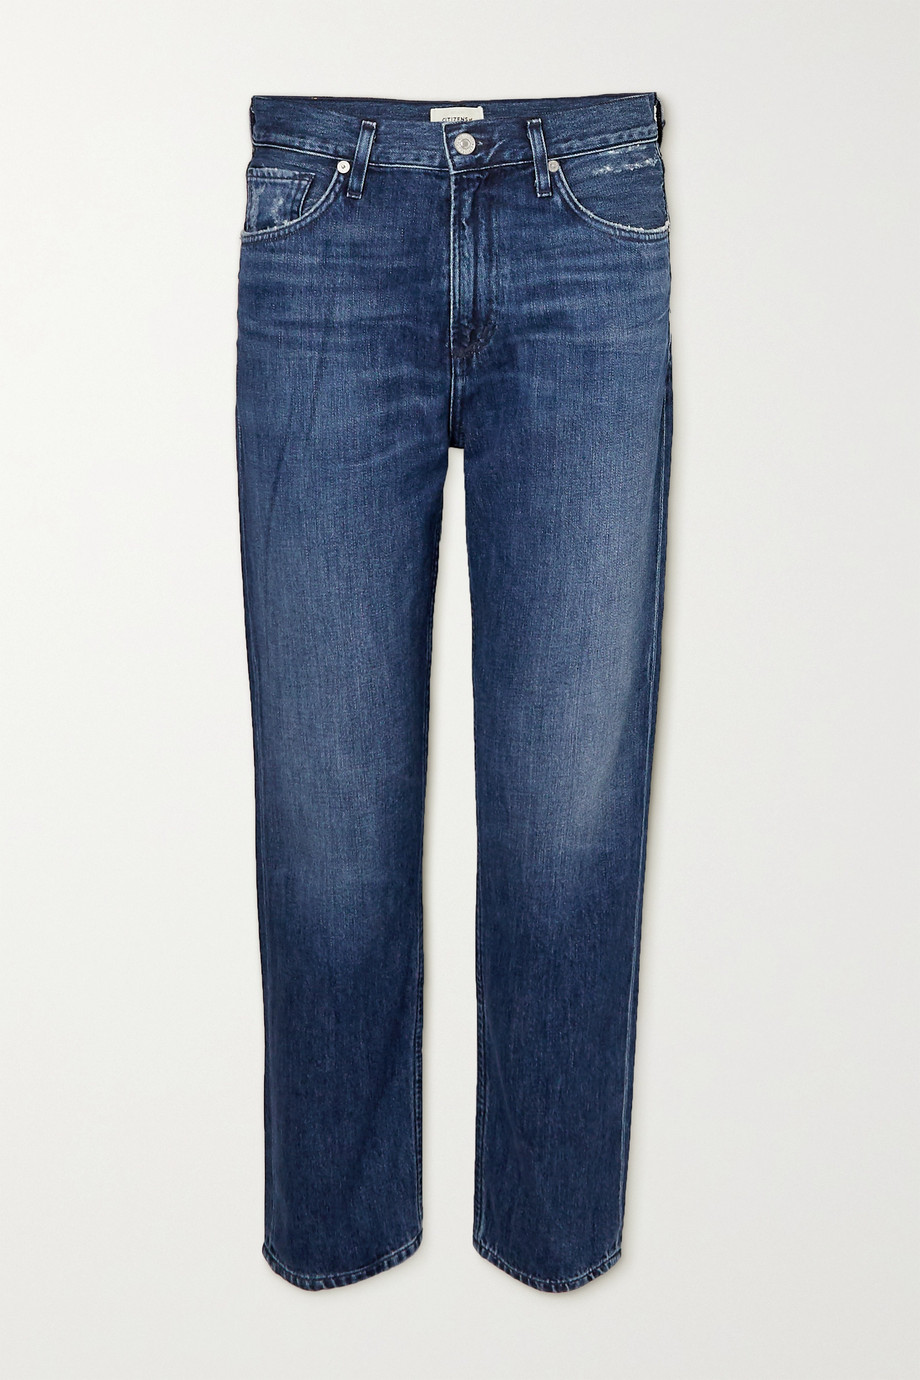 Citizens of Humanity Marlee high-rise boyfriend jeans